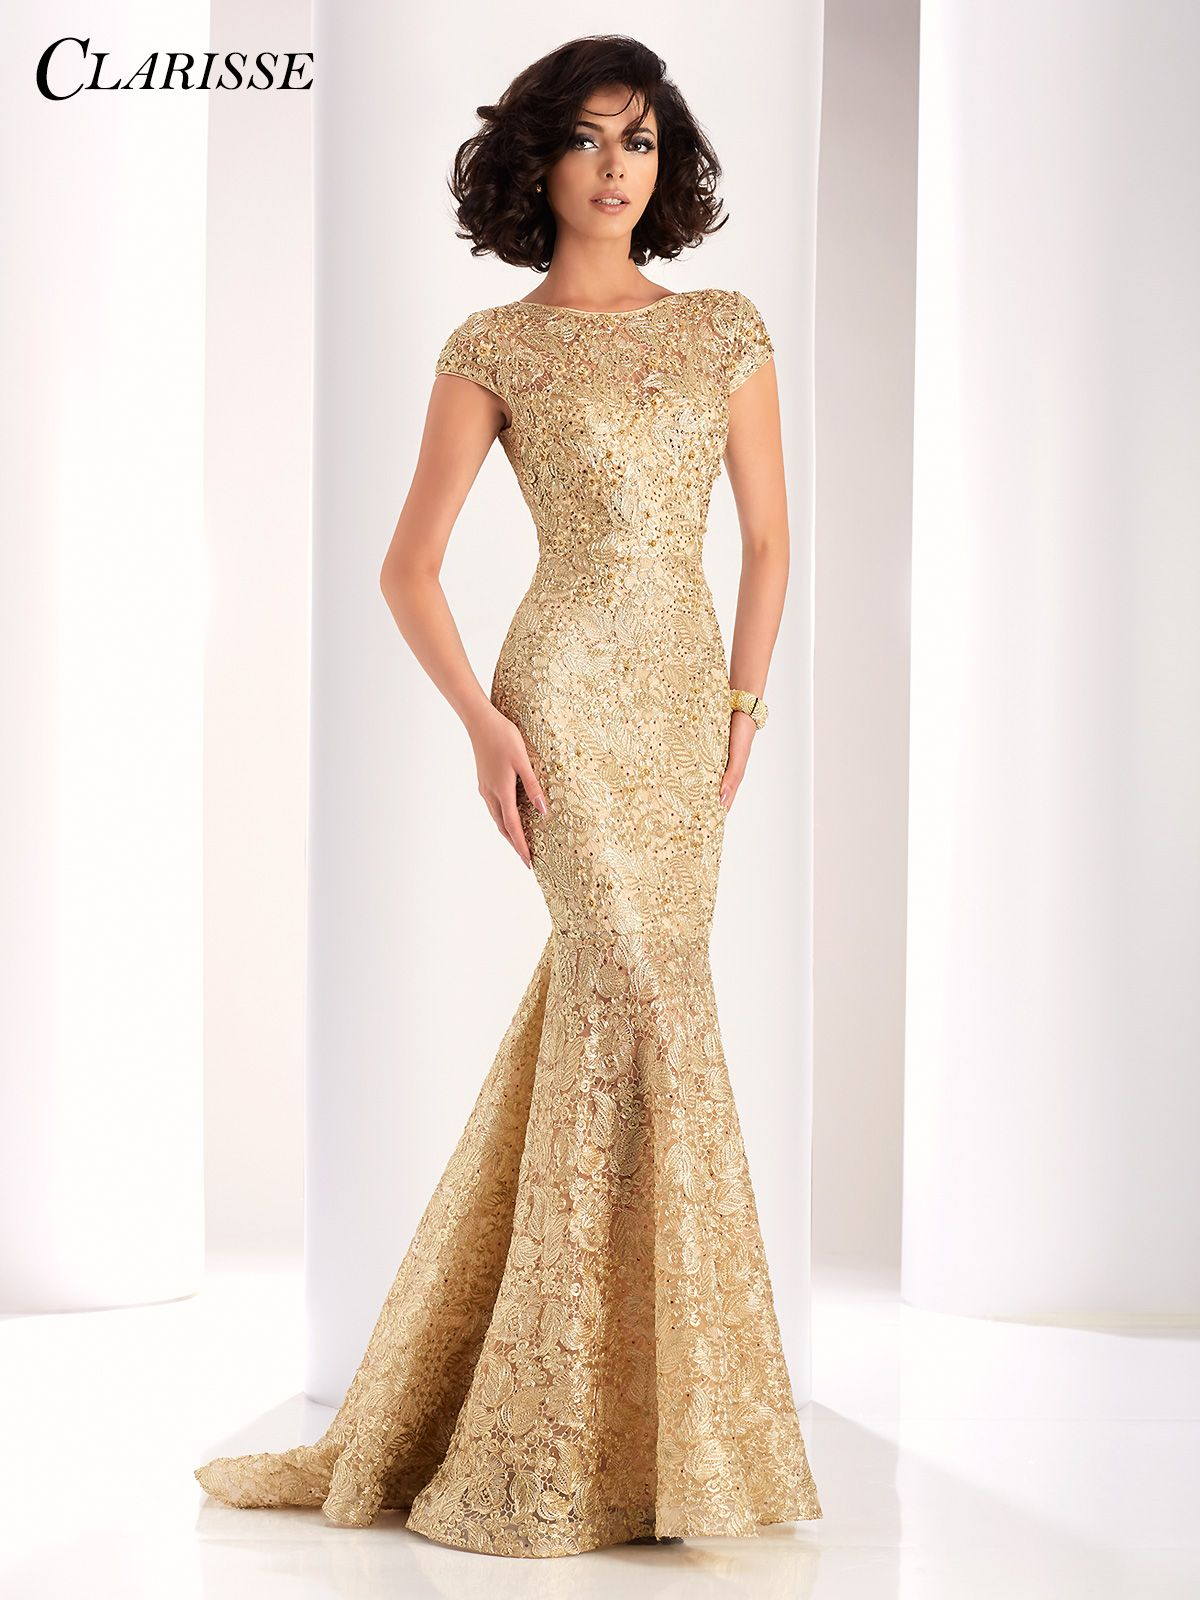 Clarisse Gold Lace Mermaid Evening Gown 4852 5192299ba8f3